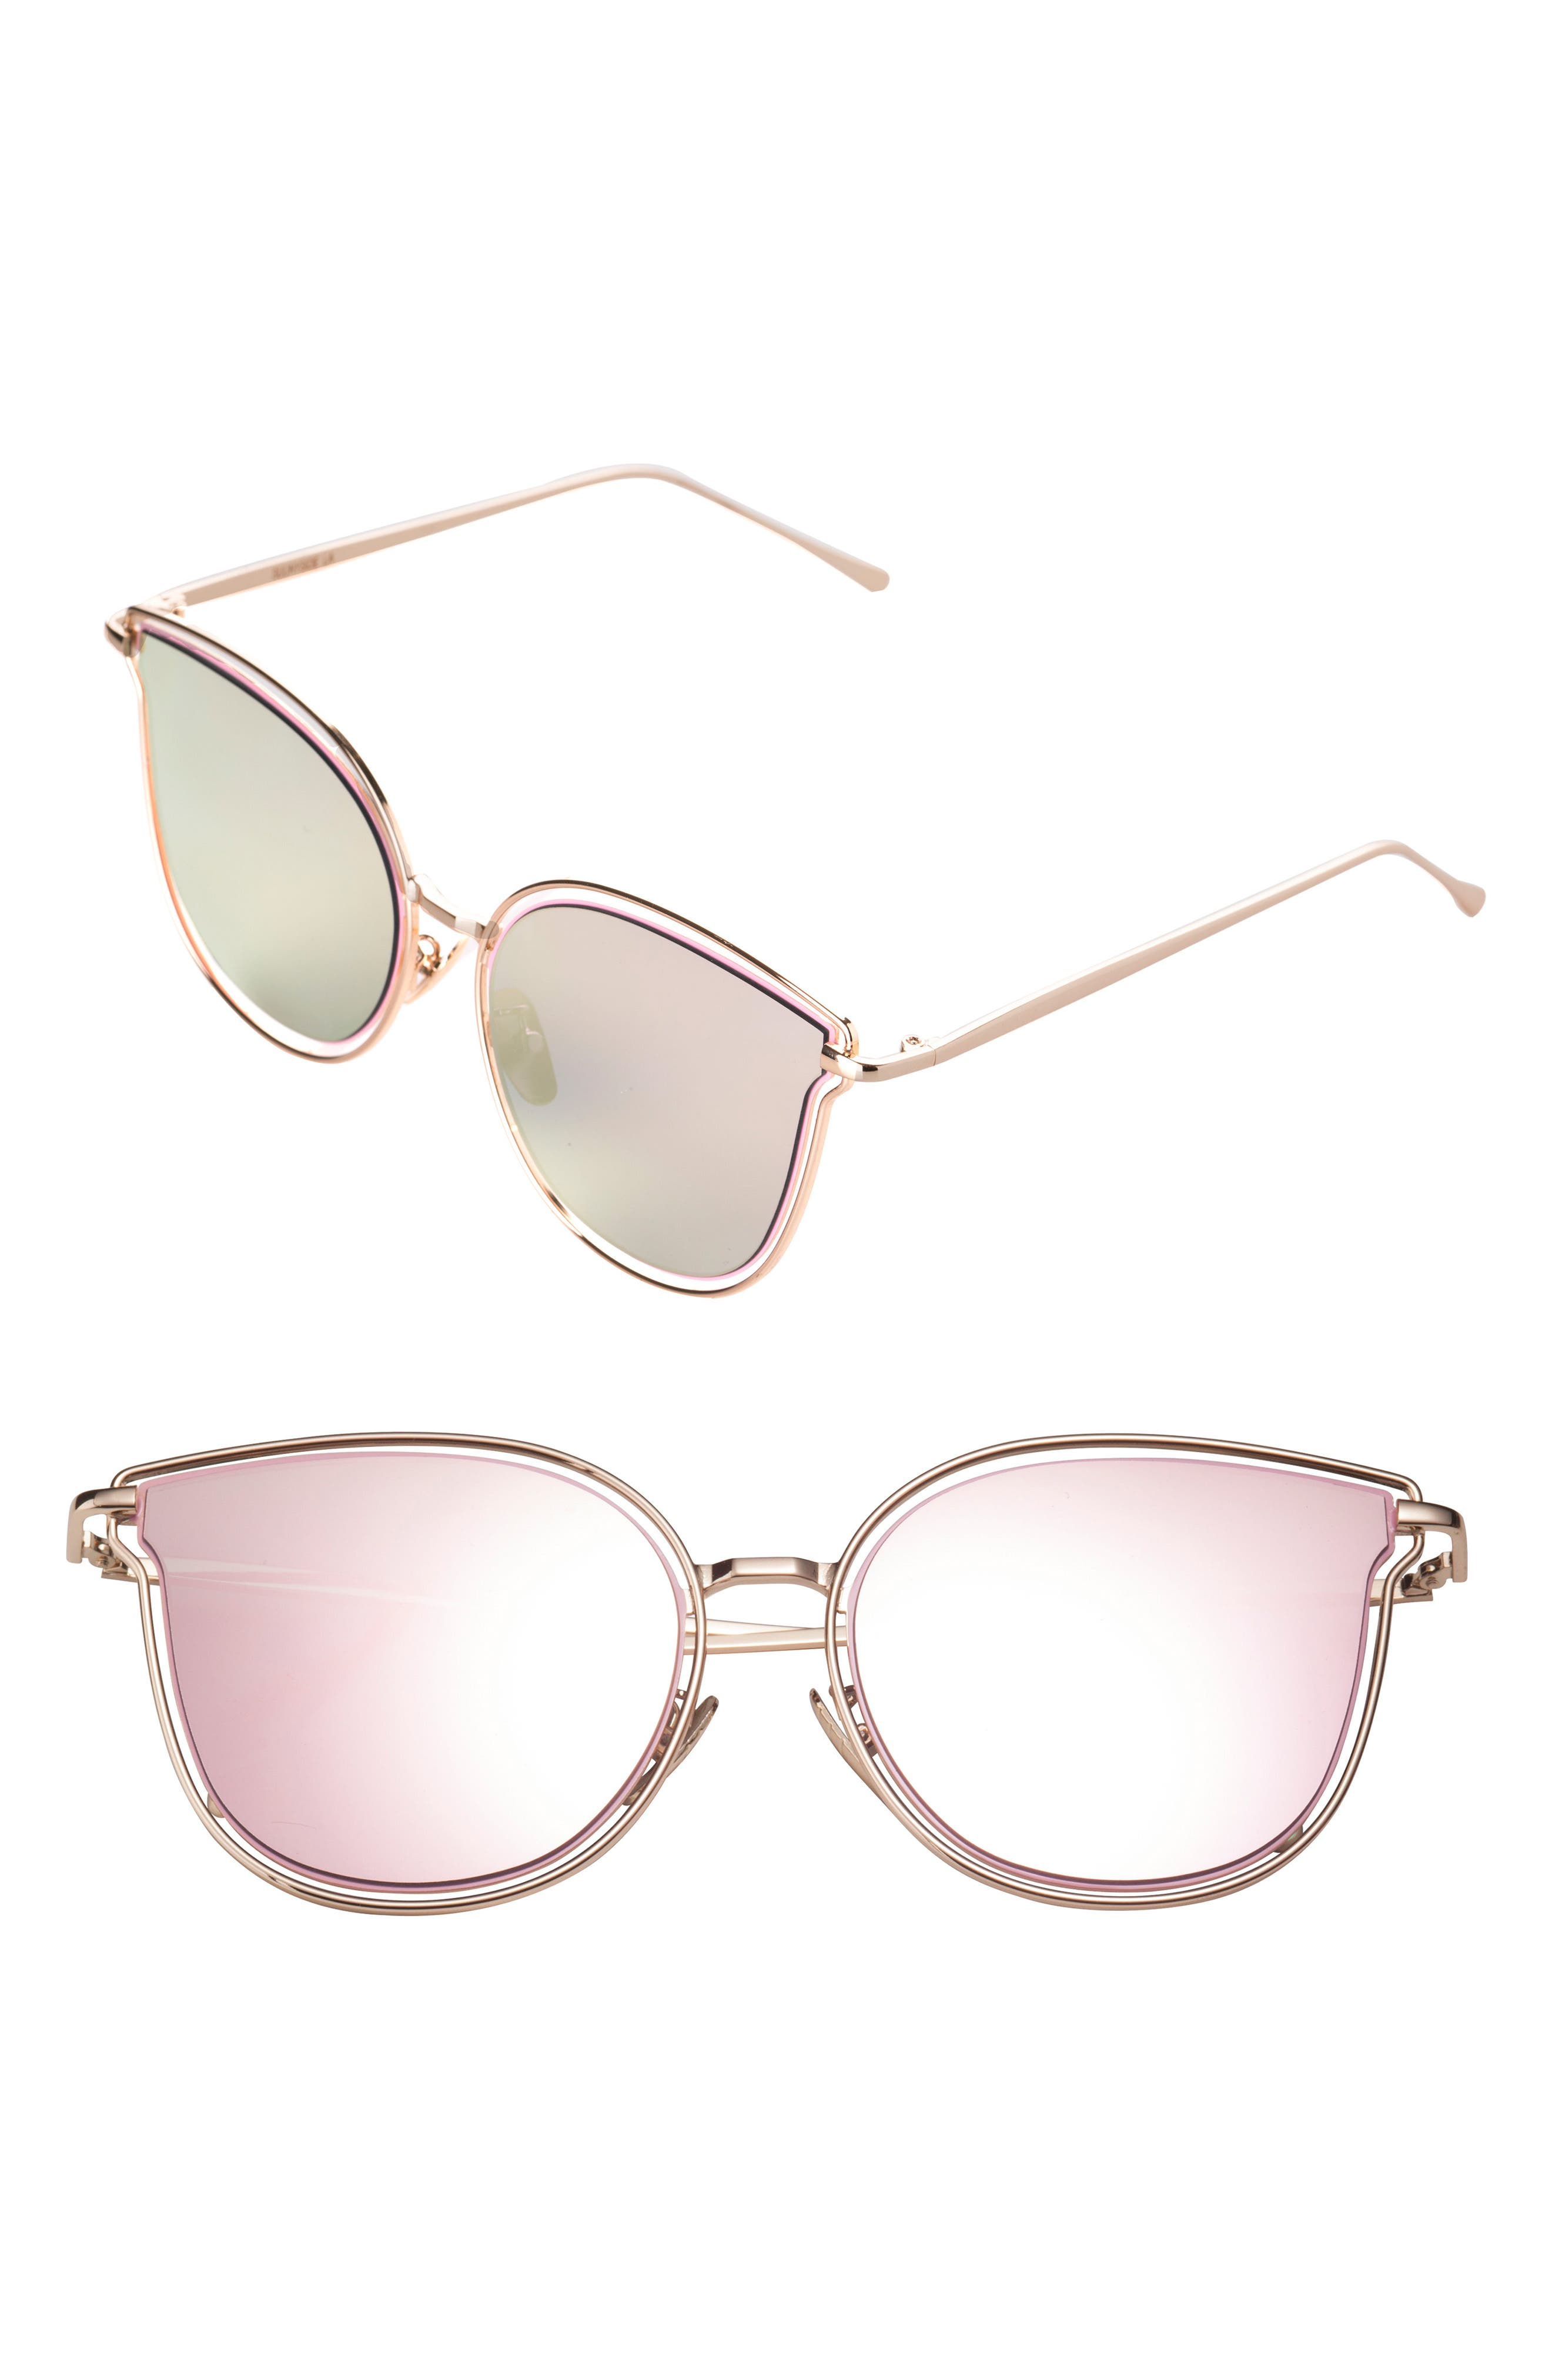 54mm Mirrored Cat Eye Sunglasses,                         Main,                         color, PINK/ GOLD